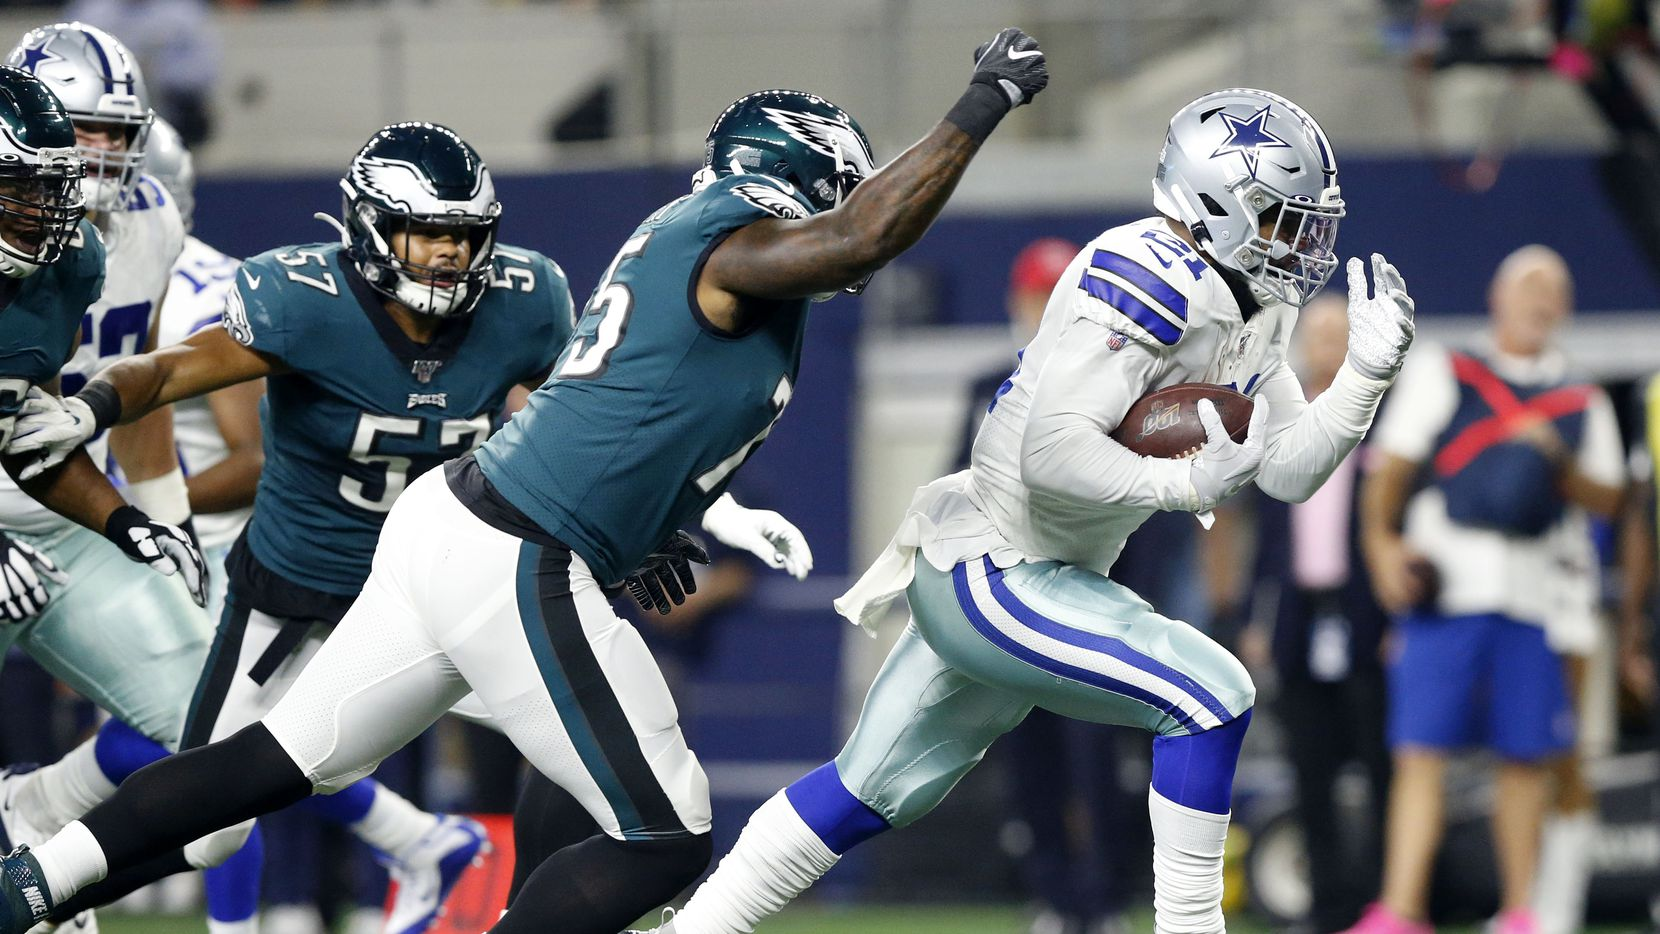 Dallas Cowboys running back Ezekiel Elliott (21) runs for a would be first quarter touchdown against Philadelphia Eagles defensive end Vinny Curry (75) at AT&T Stadium in Arlington, Texas, Sunday, October 20, 2019. Elliott's knee touchdown short of the line. He scored thereafter.